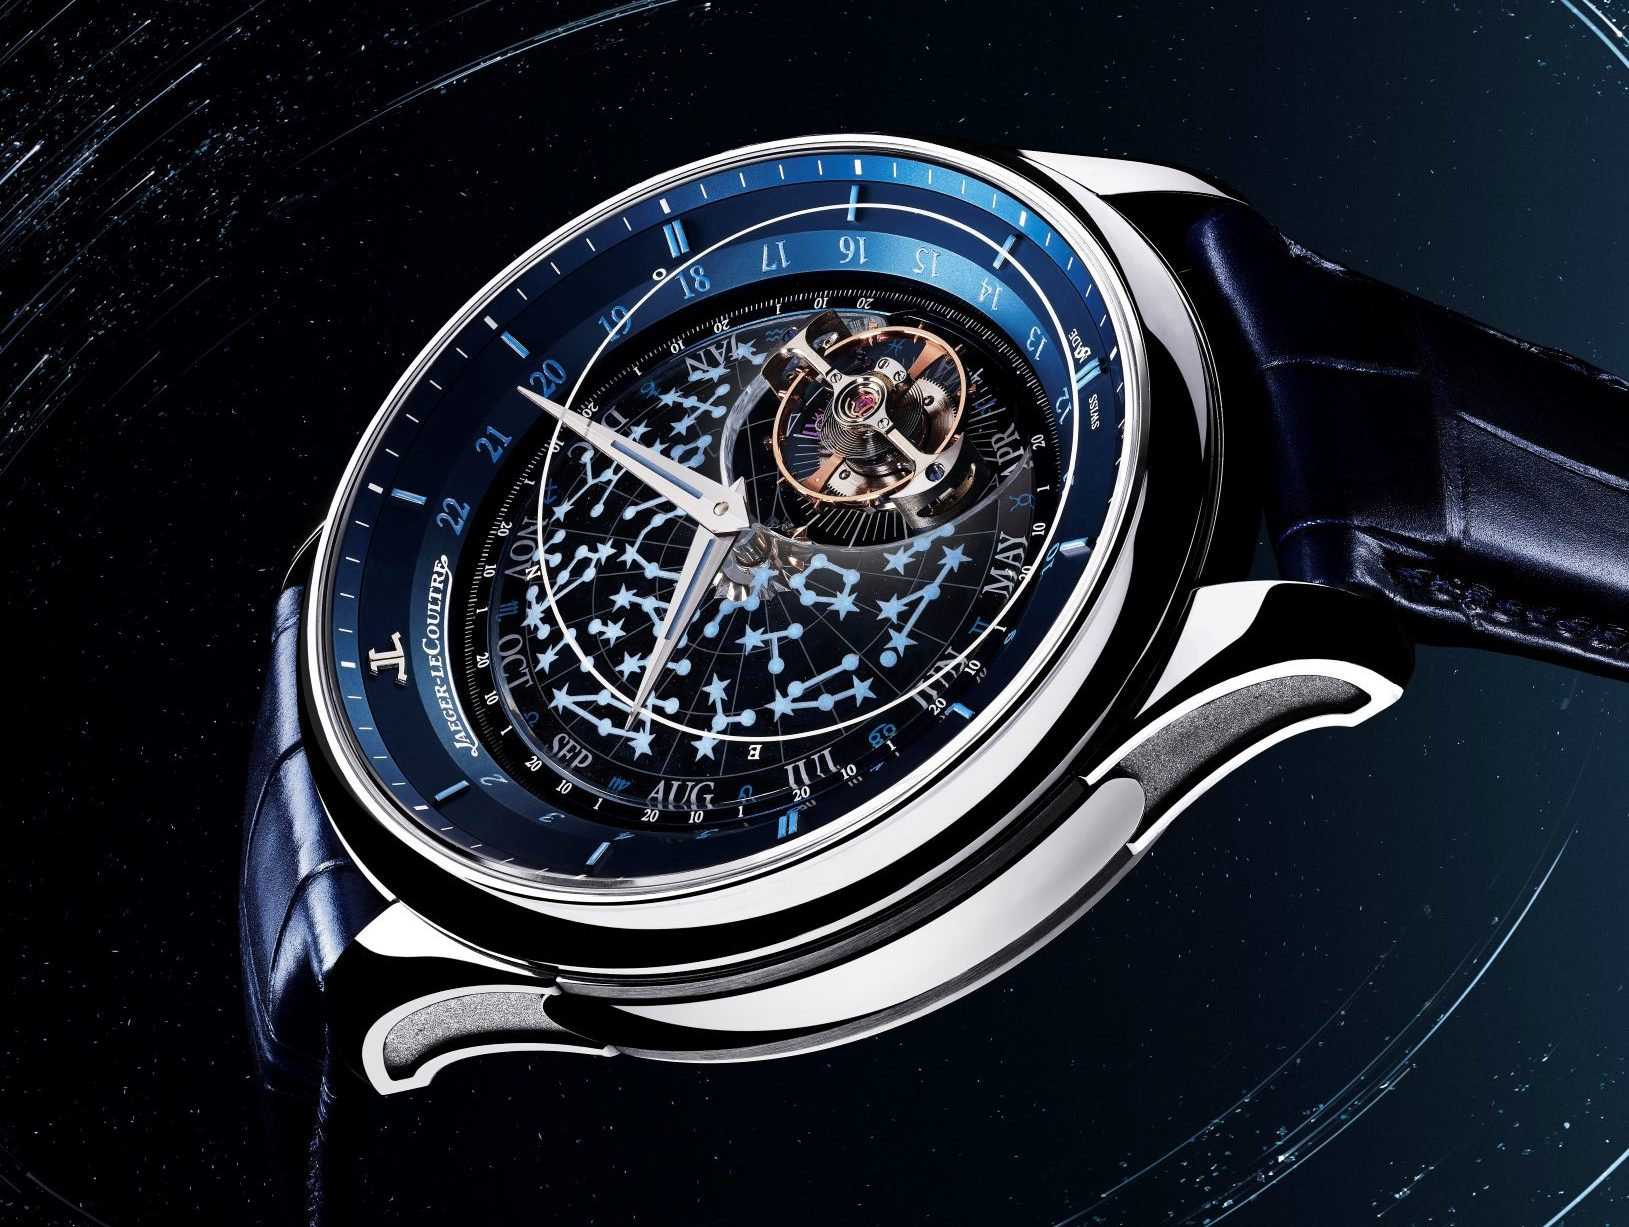 185000 eur for Jaeger-LeCoultre Master Grande Tradition Tourbillon Céleste